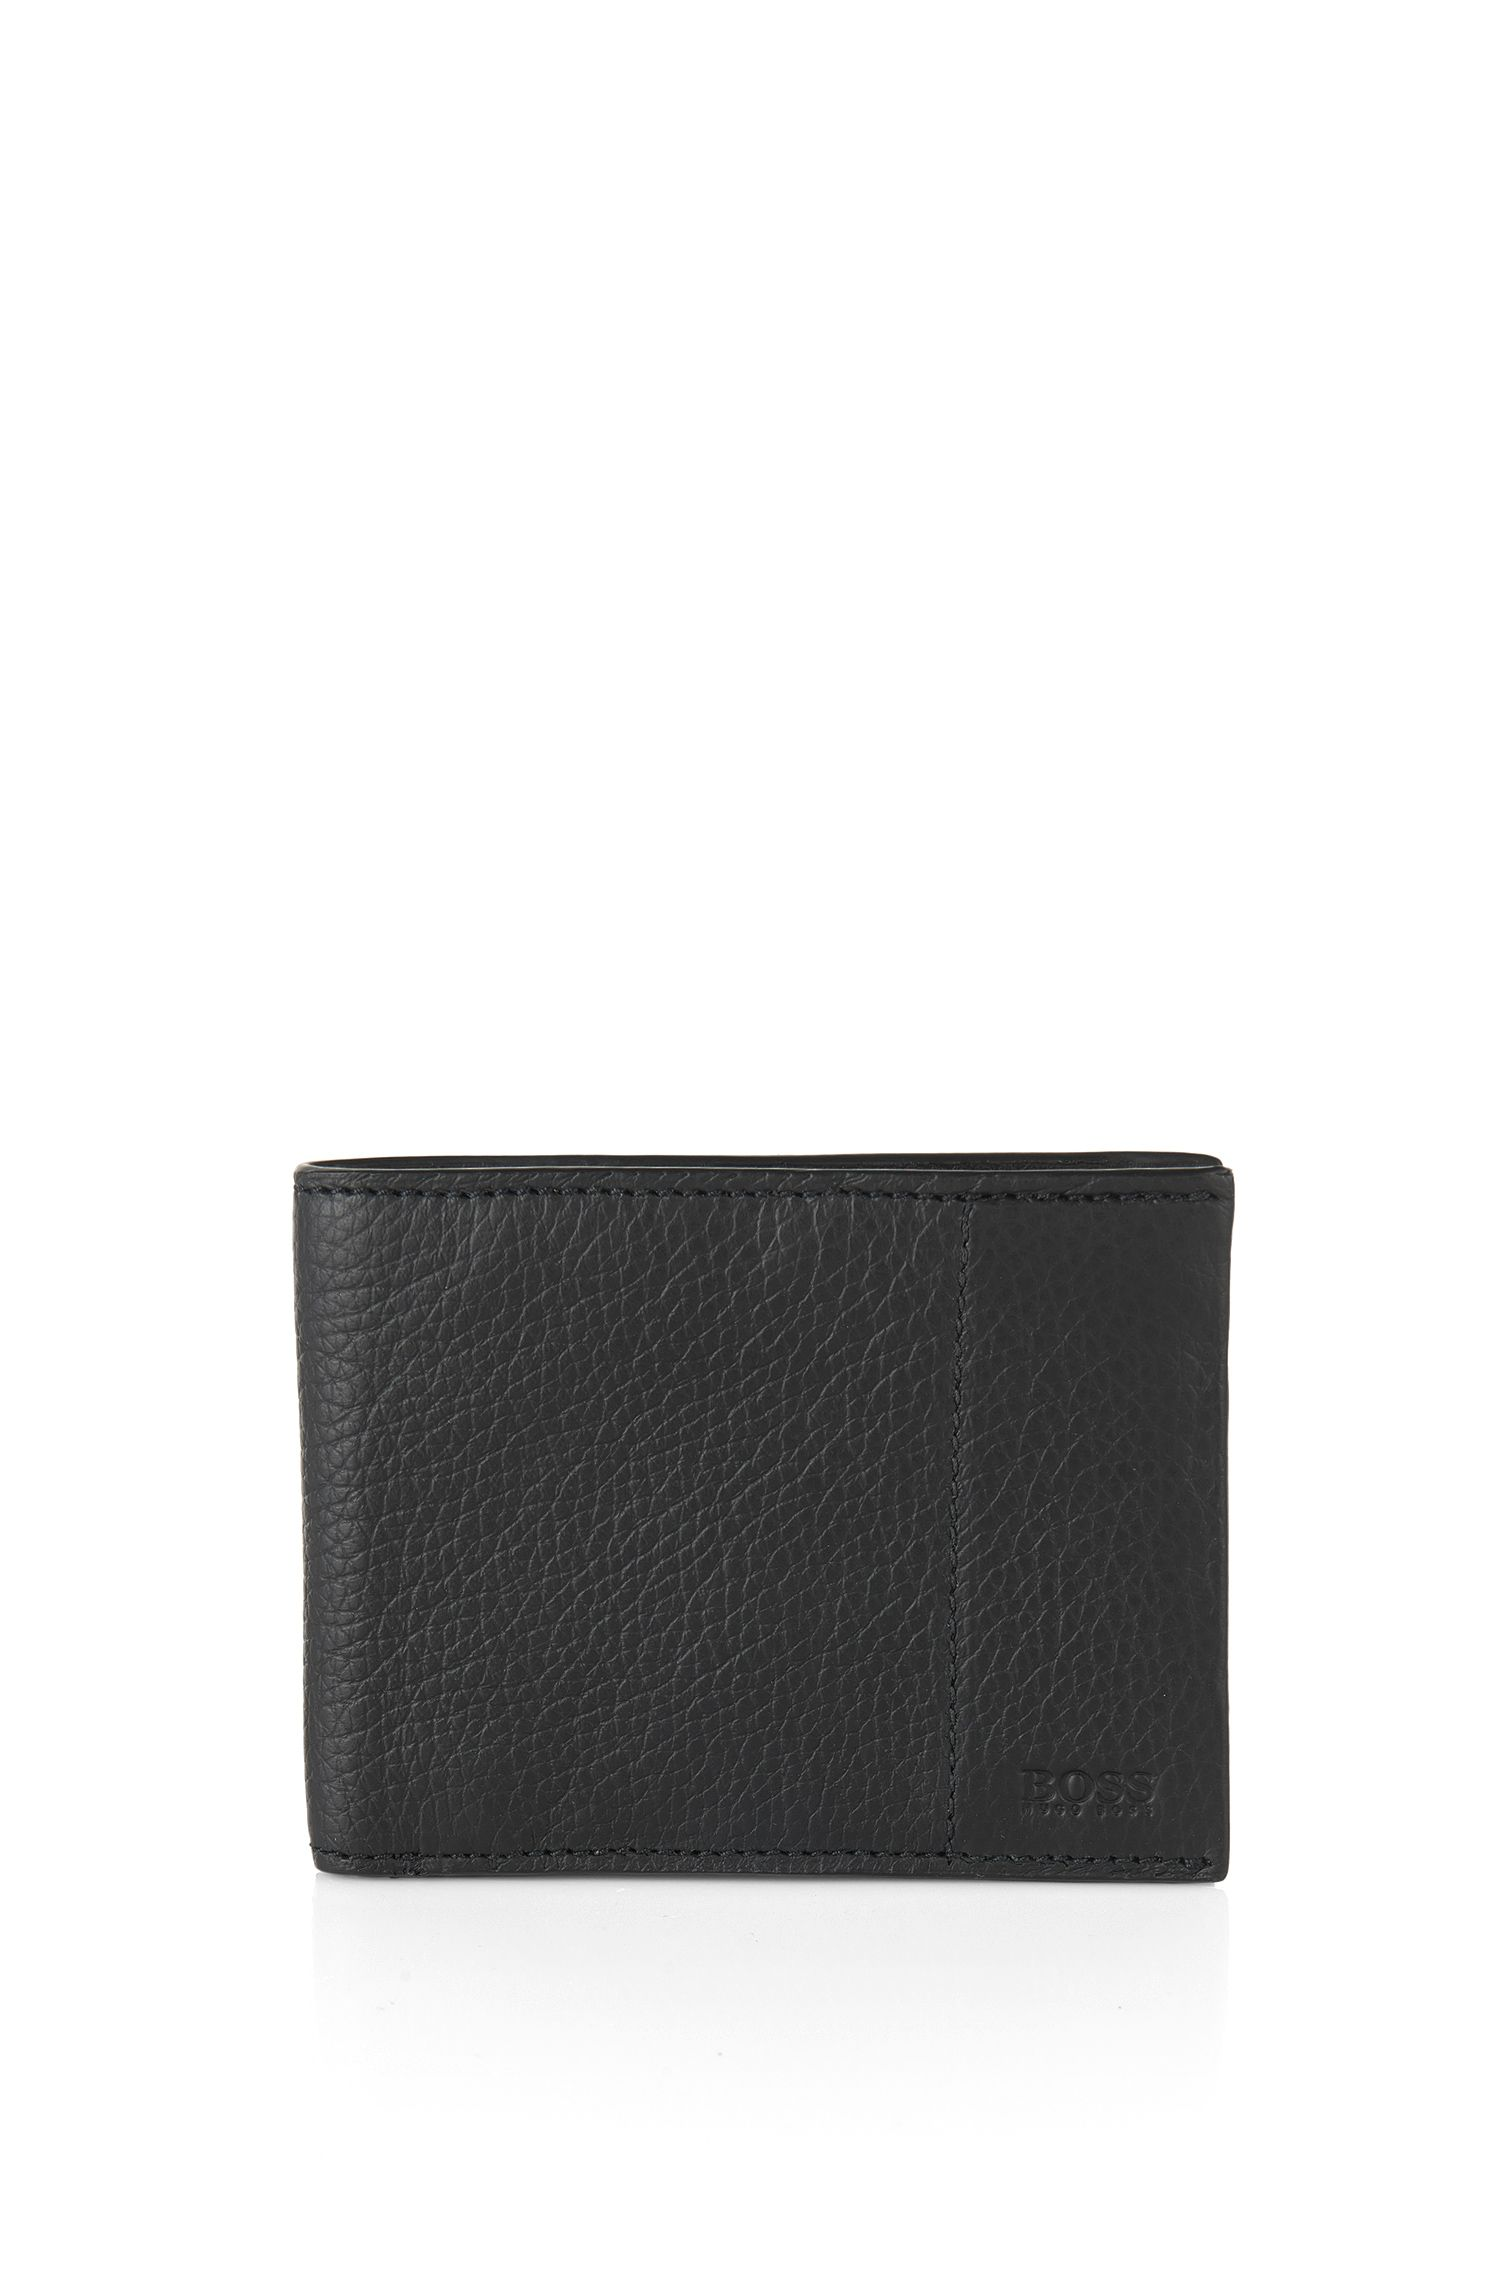 Bi-fold wallet in Italian leather